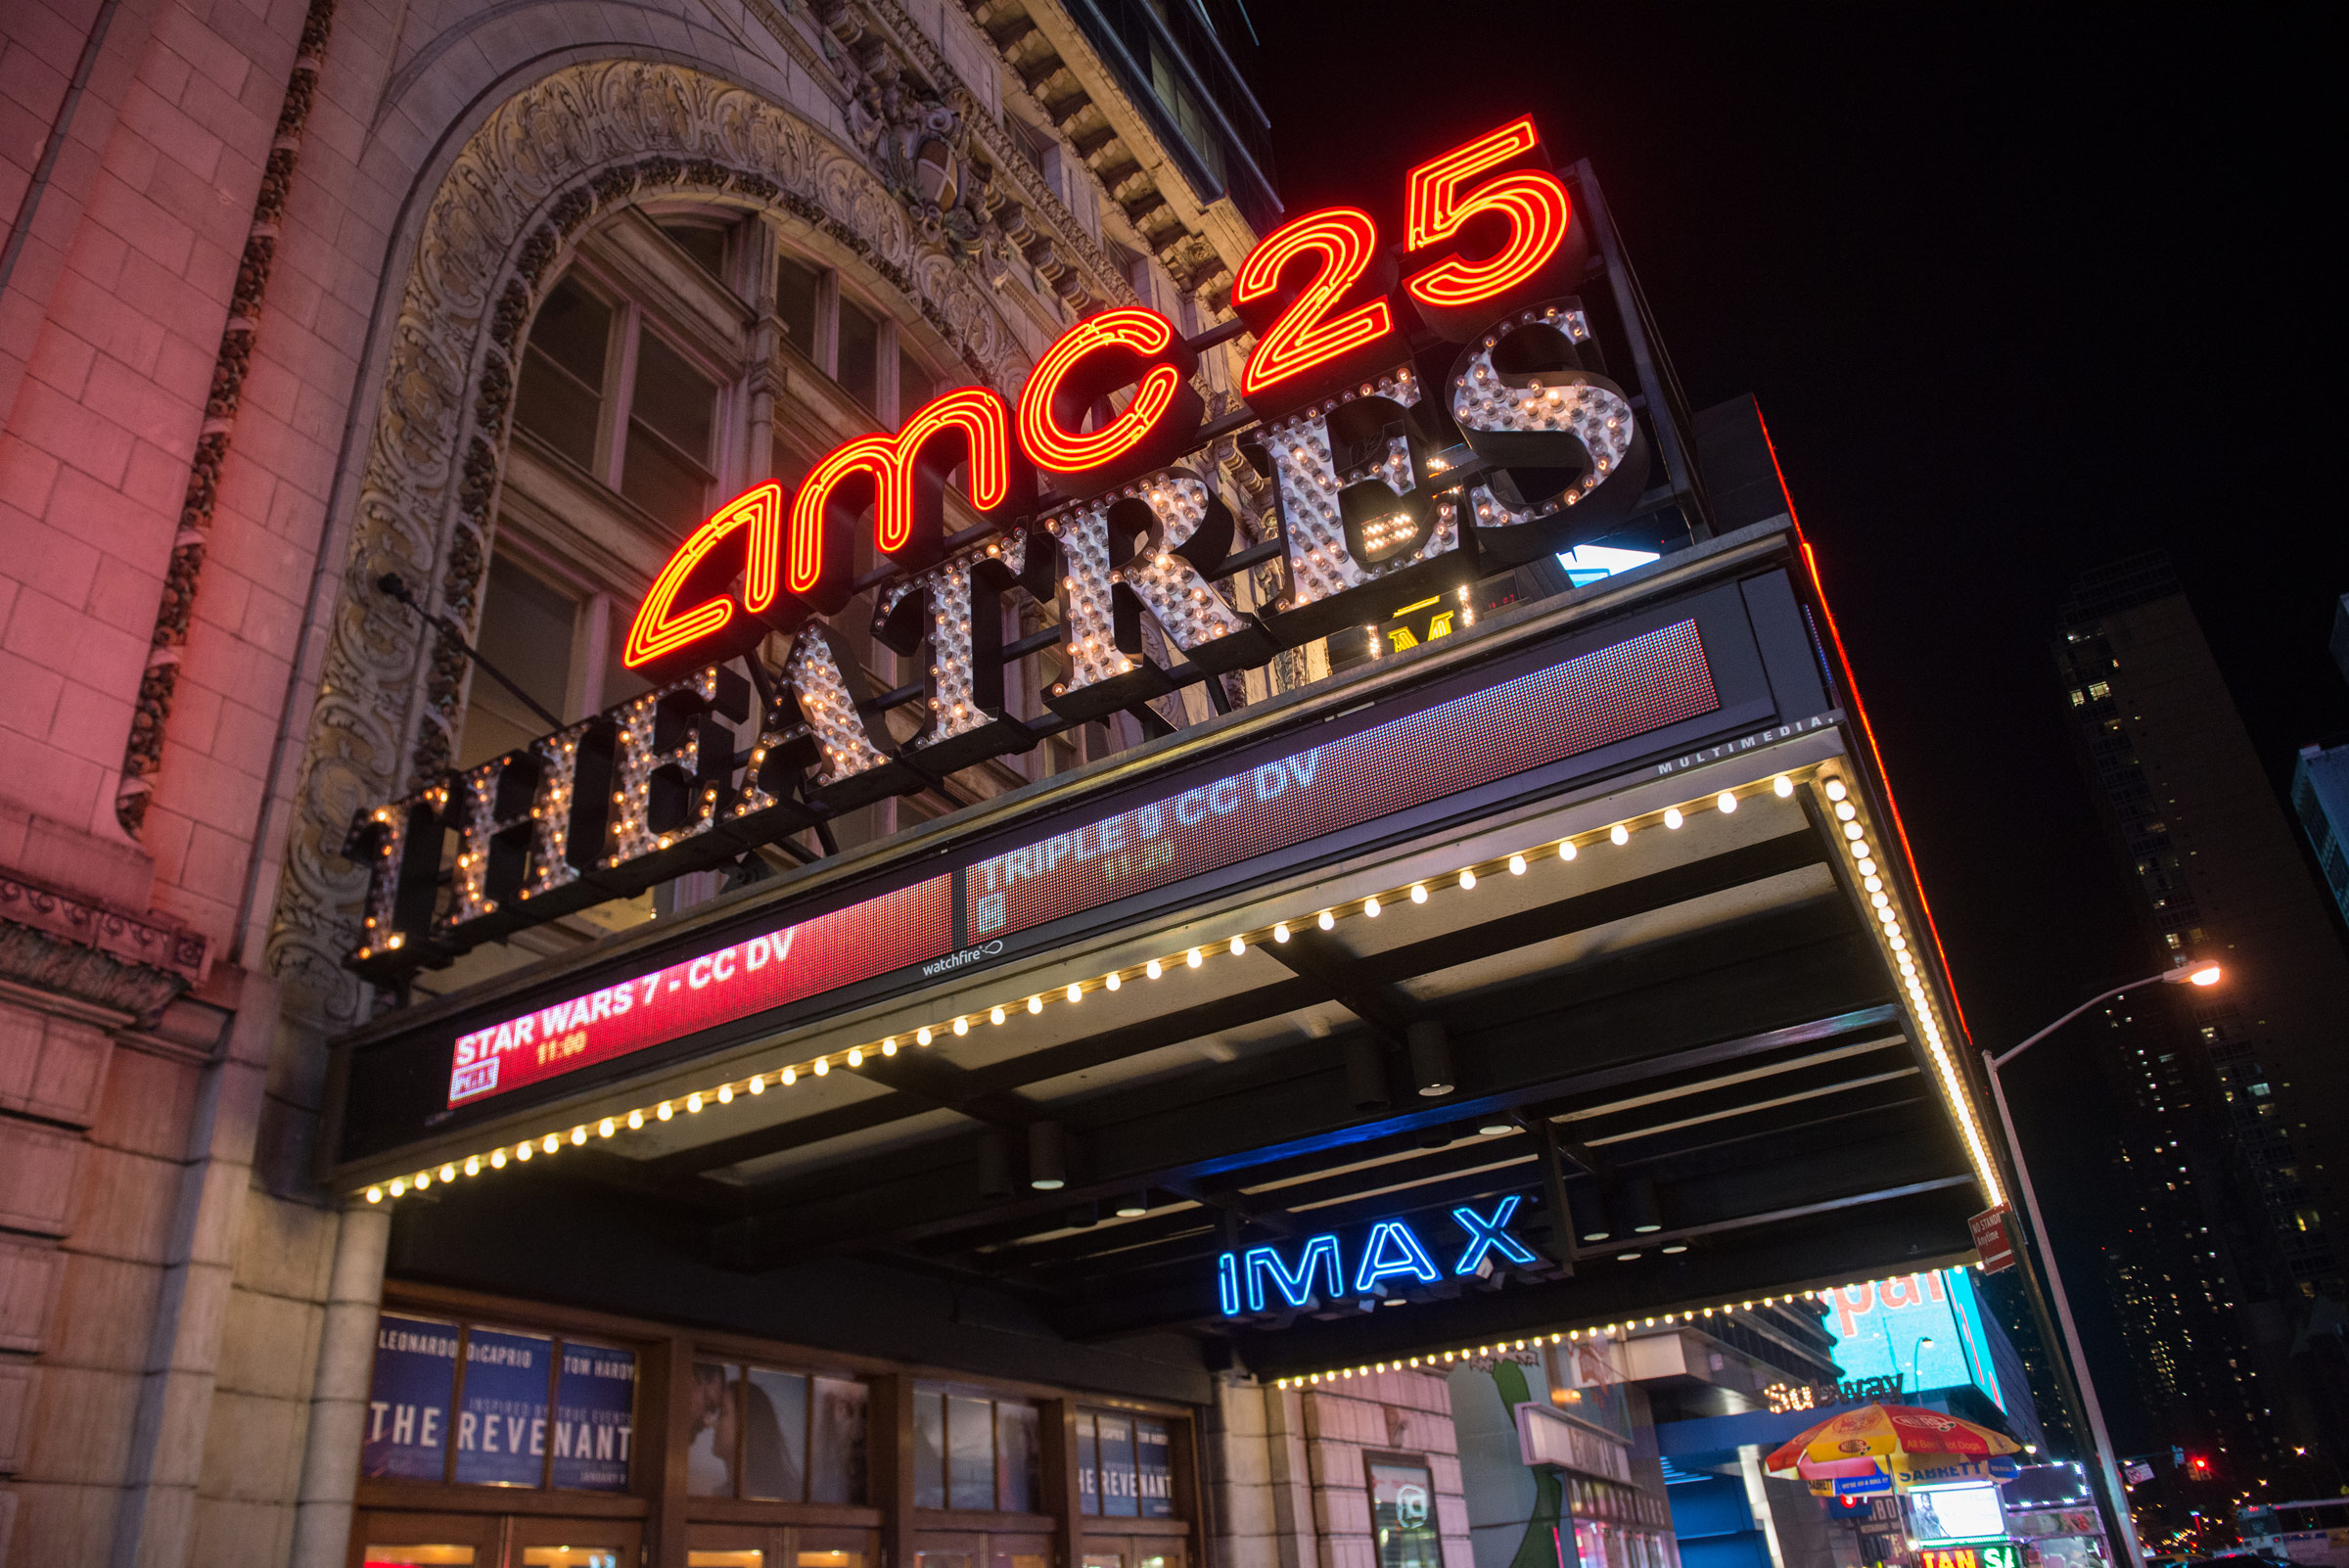 AMC Theatres will reopen Aug. 20 with 15-cent tickets